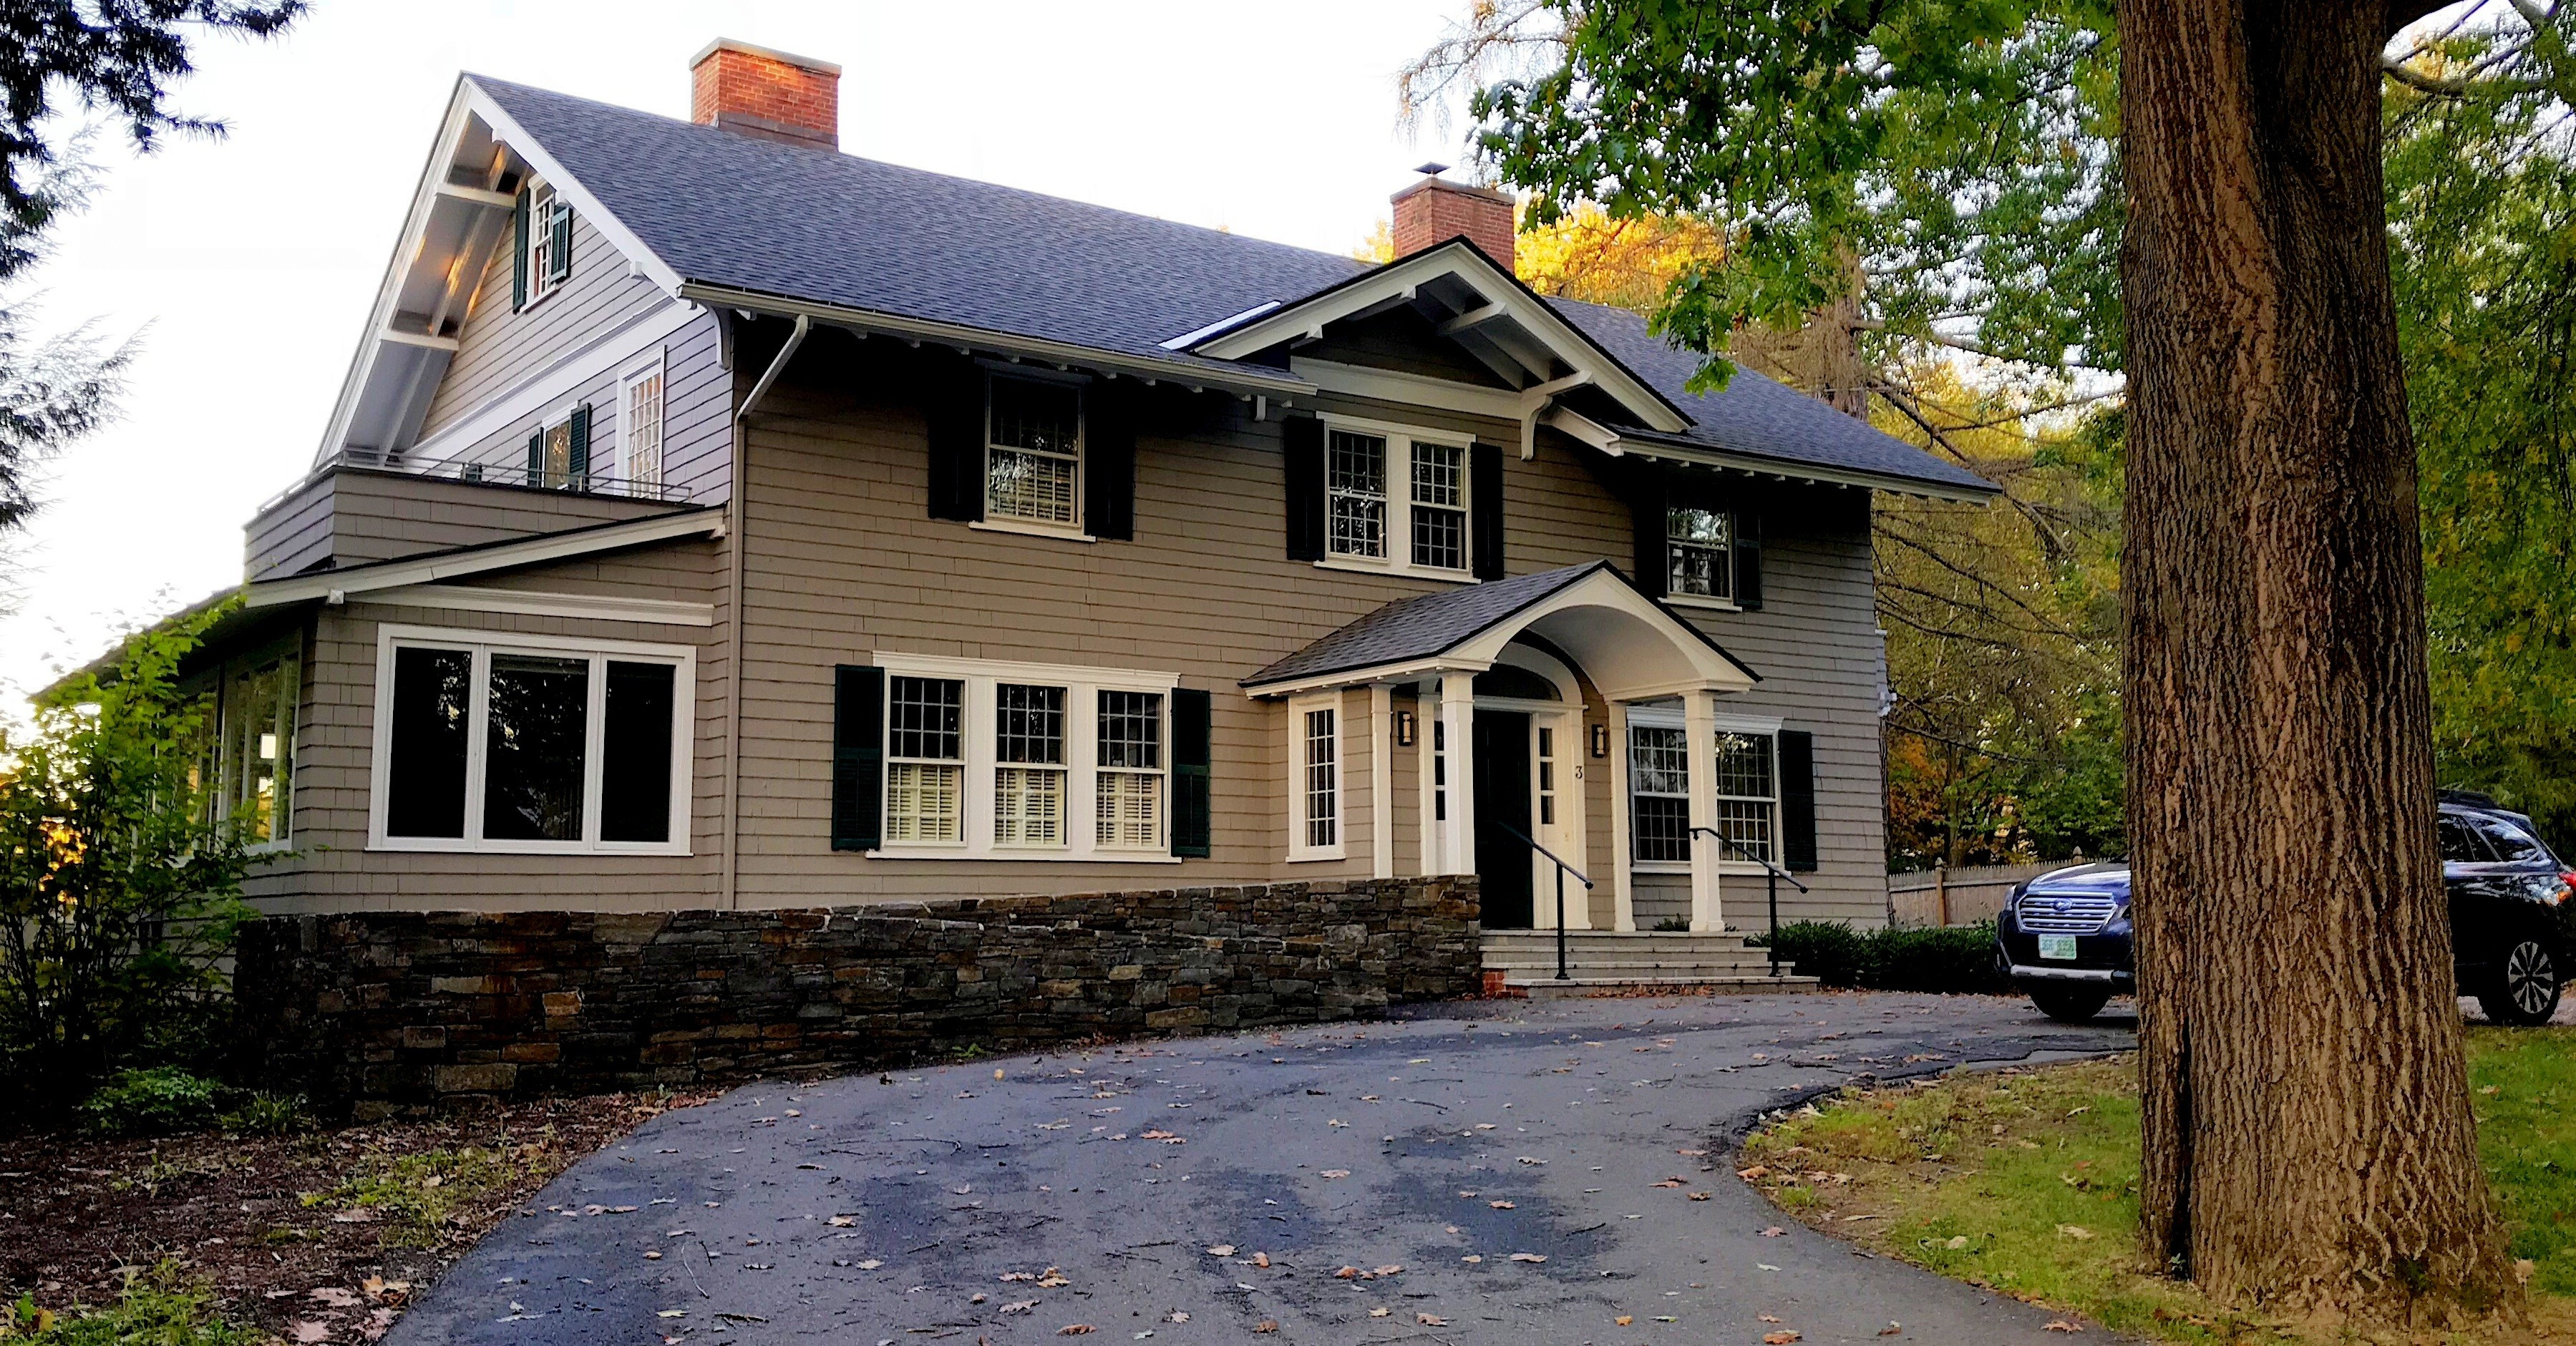 Better Homes And Gardens Real Estate Nh